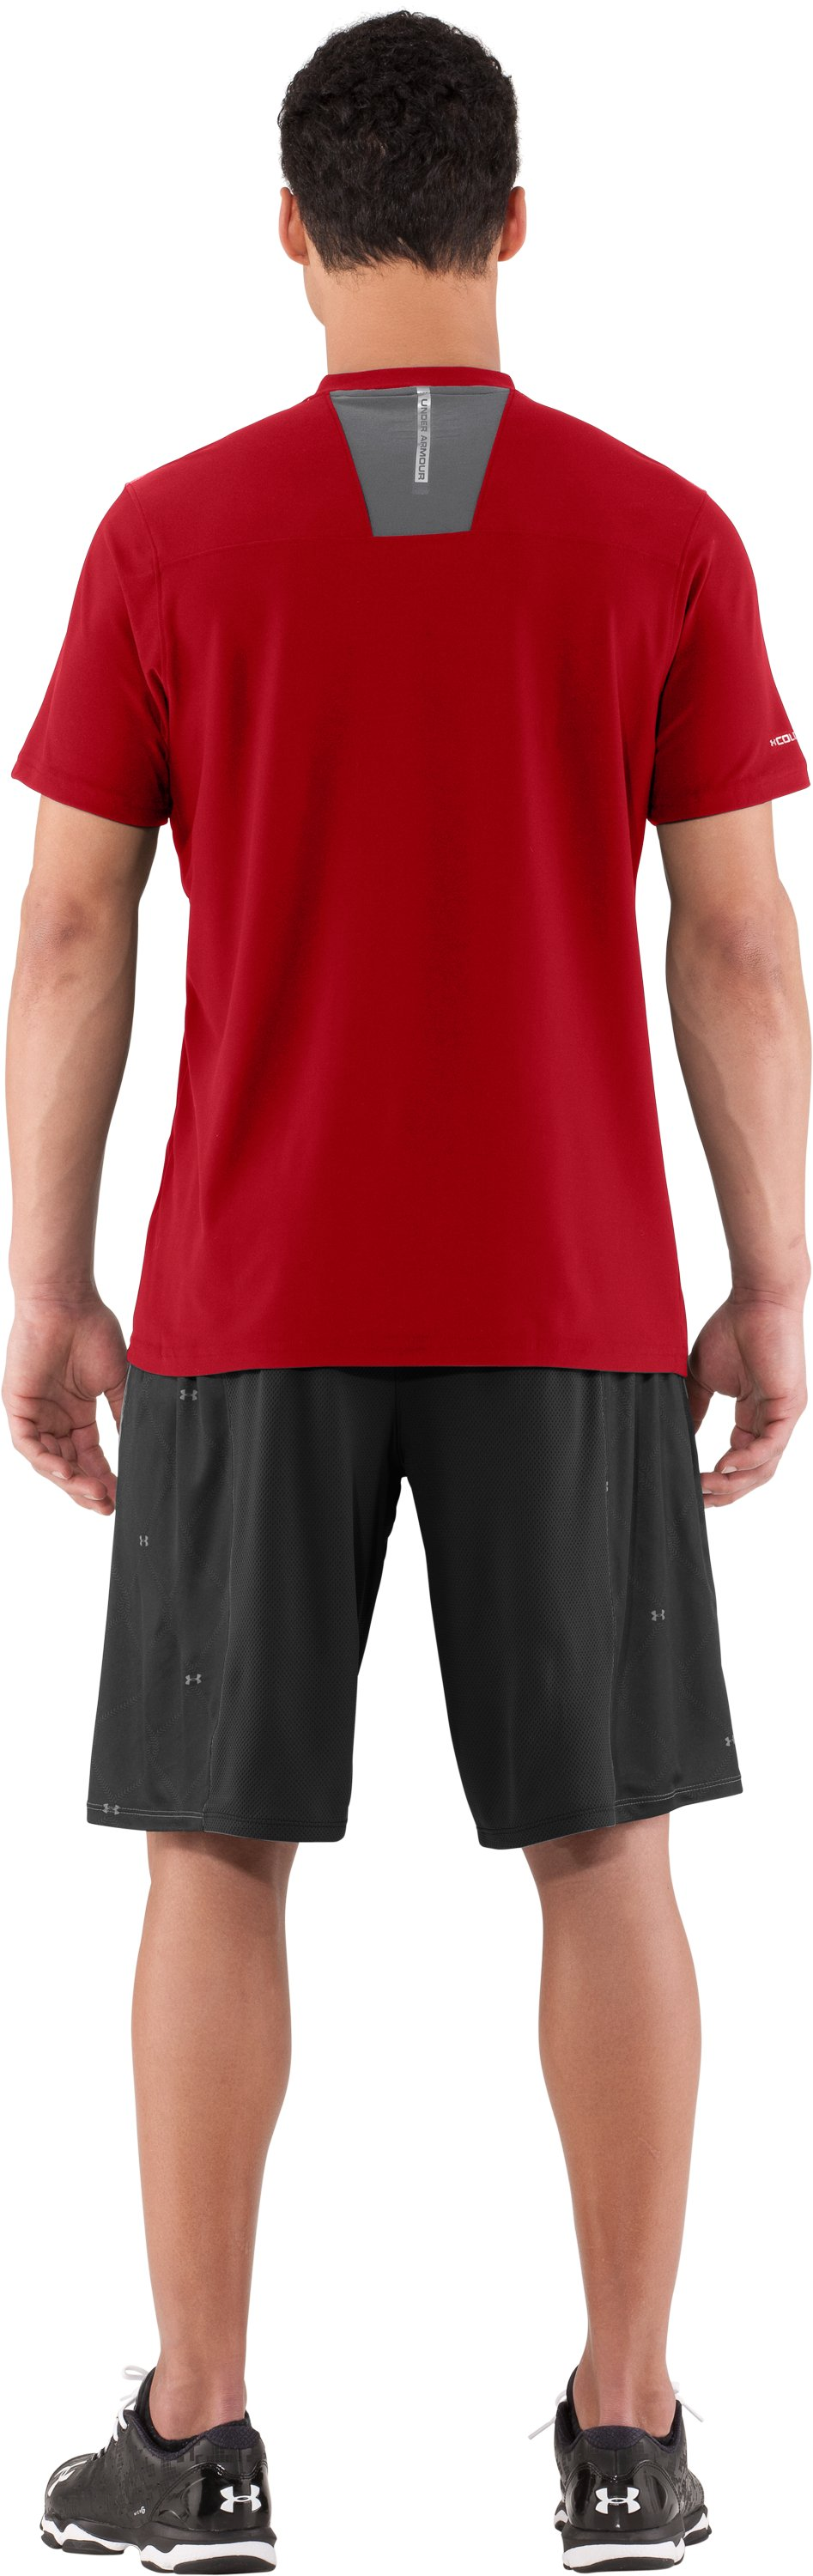 Men's coldblack® CTG Short Sleeve, Red, Back